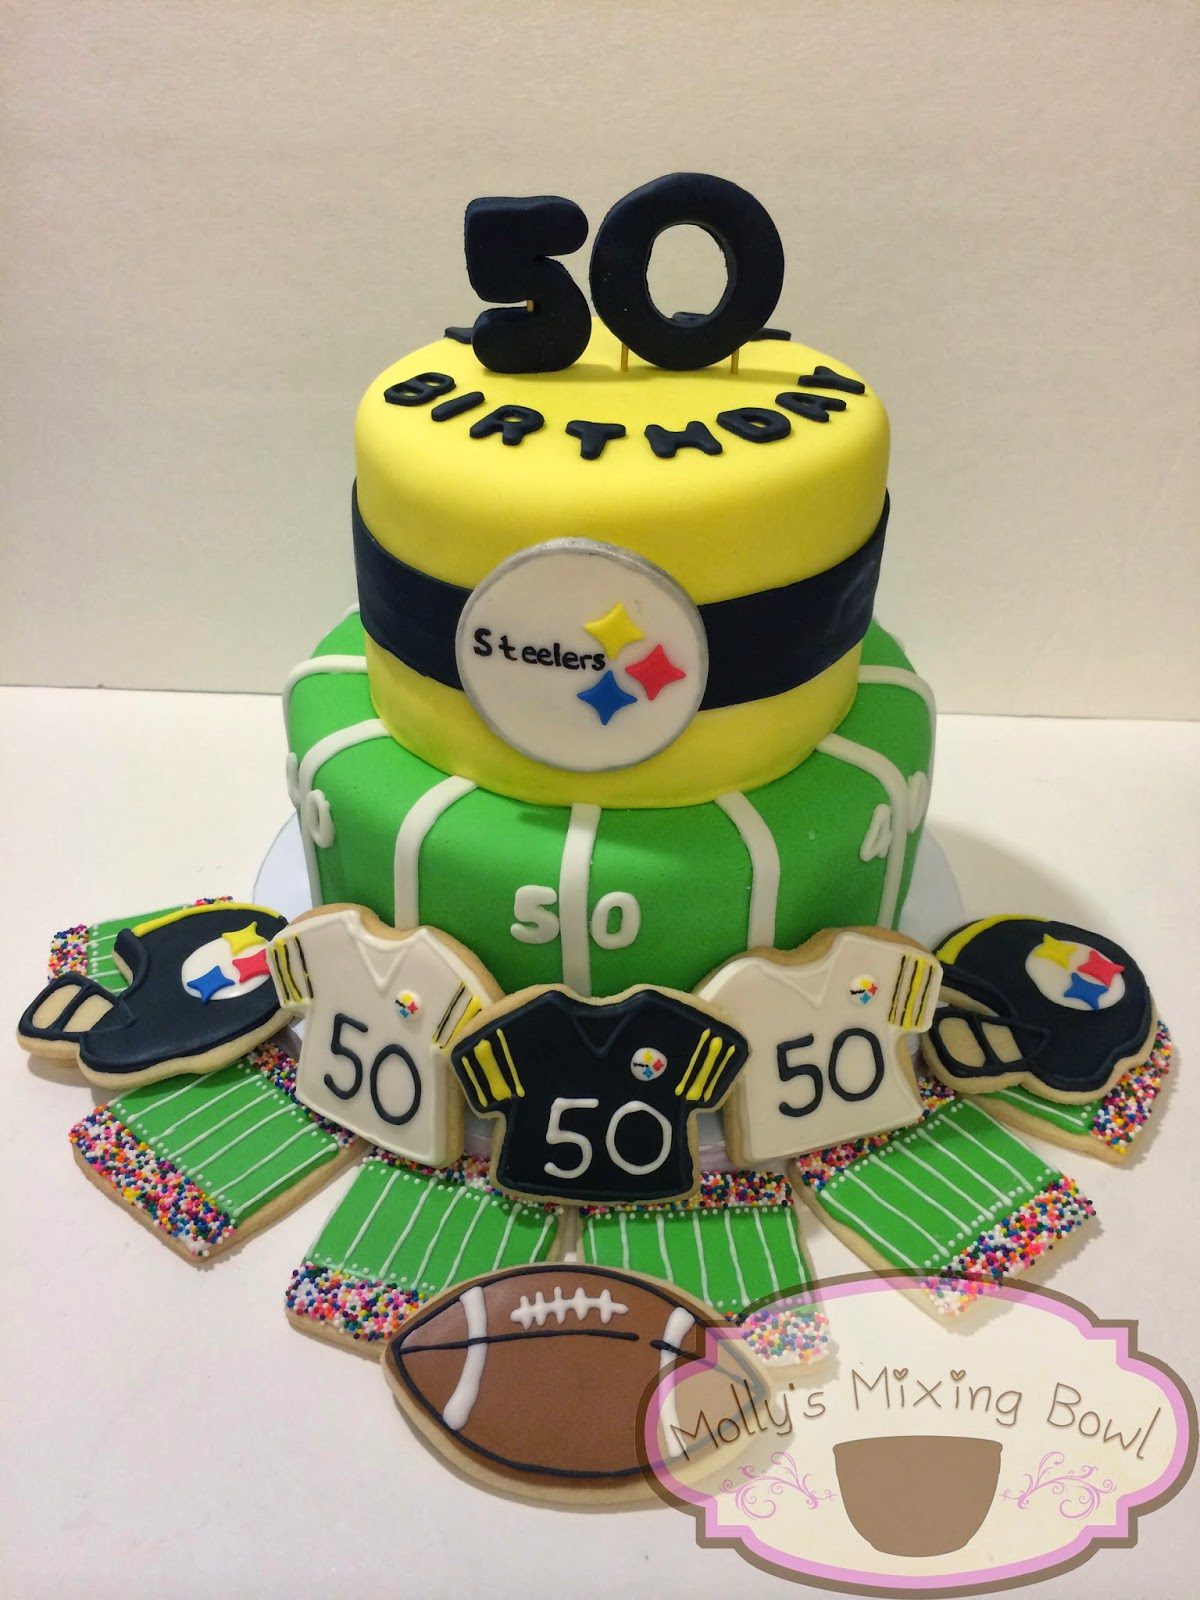 happy birthday steelers fan ; IMG_0972+copy